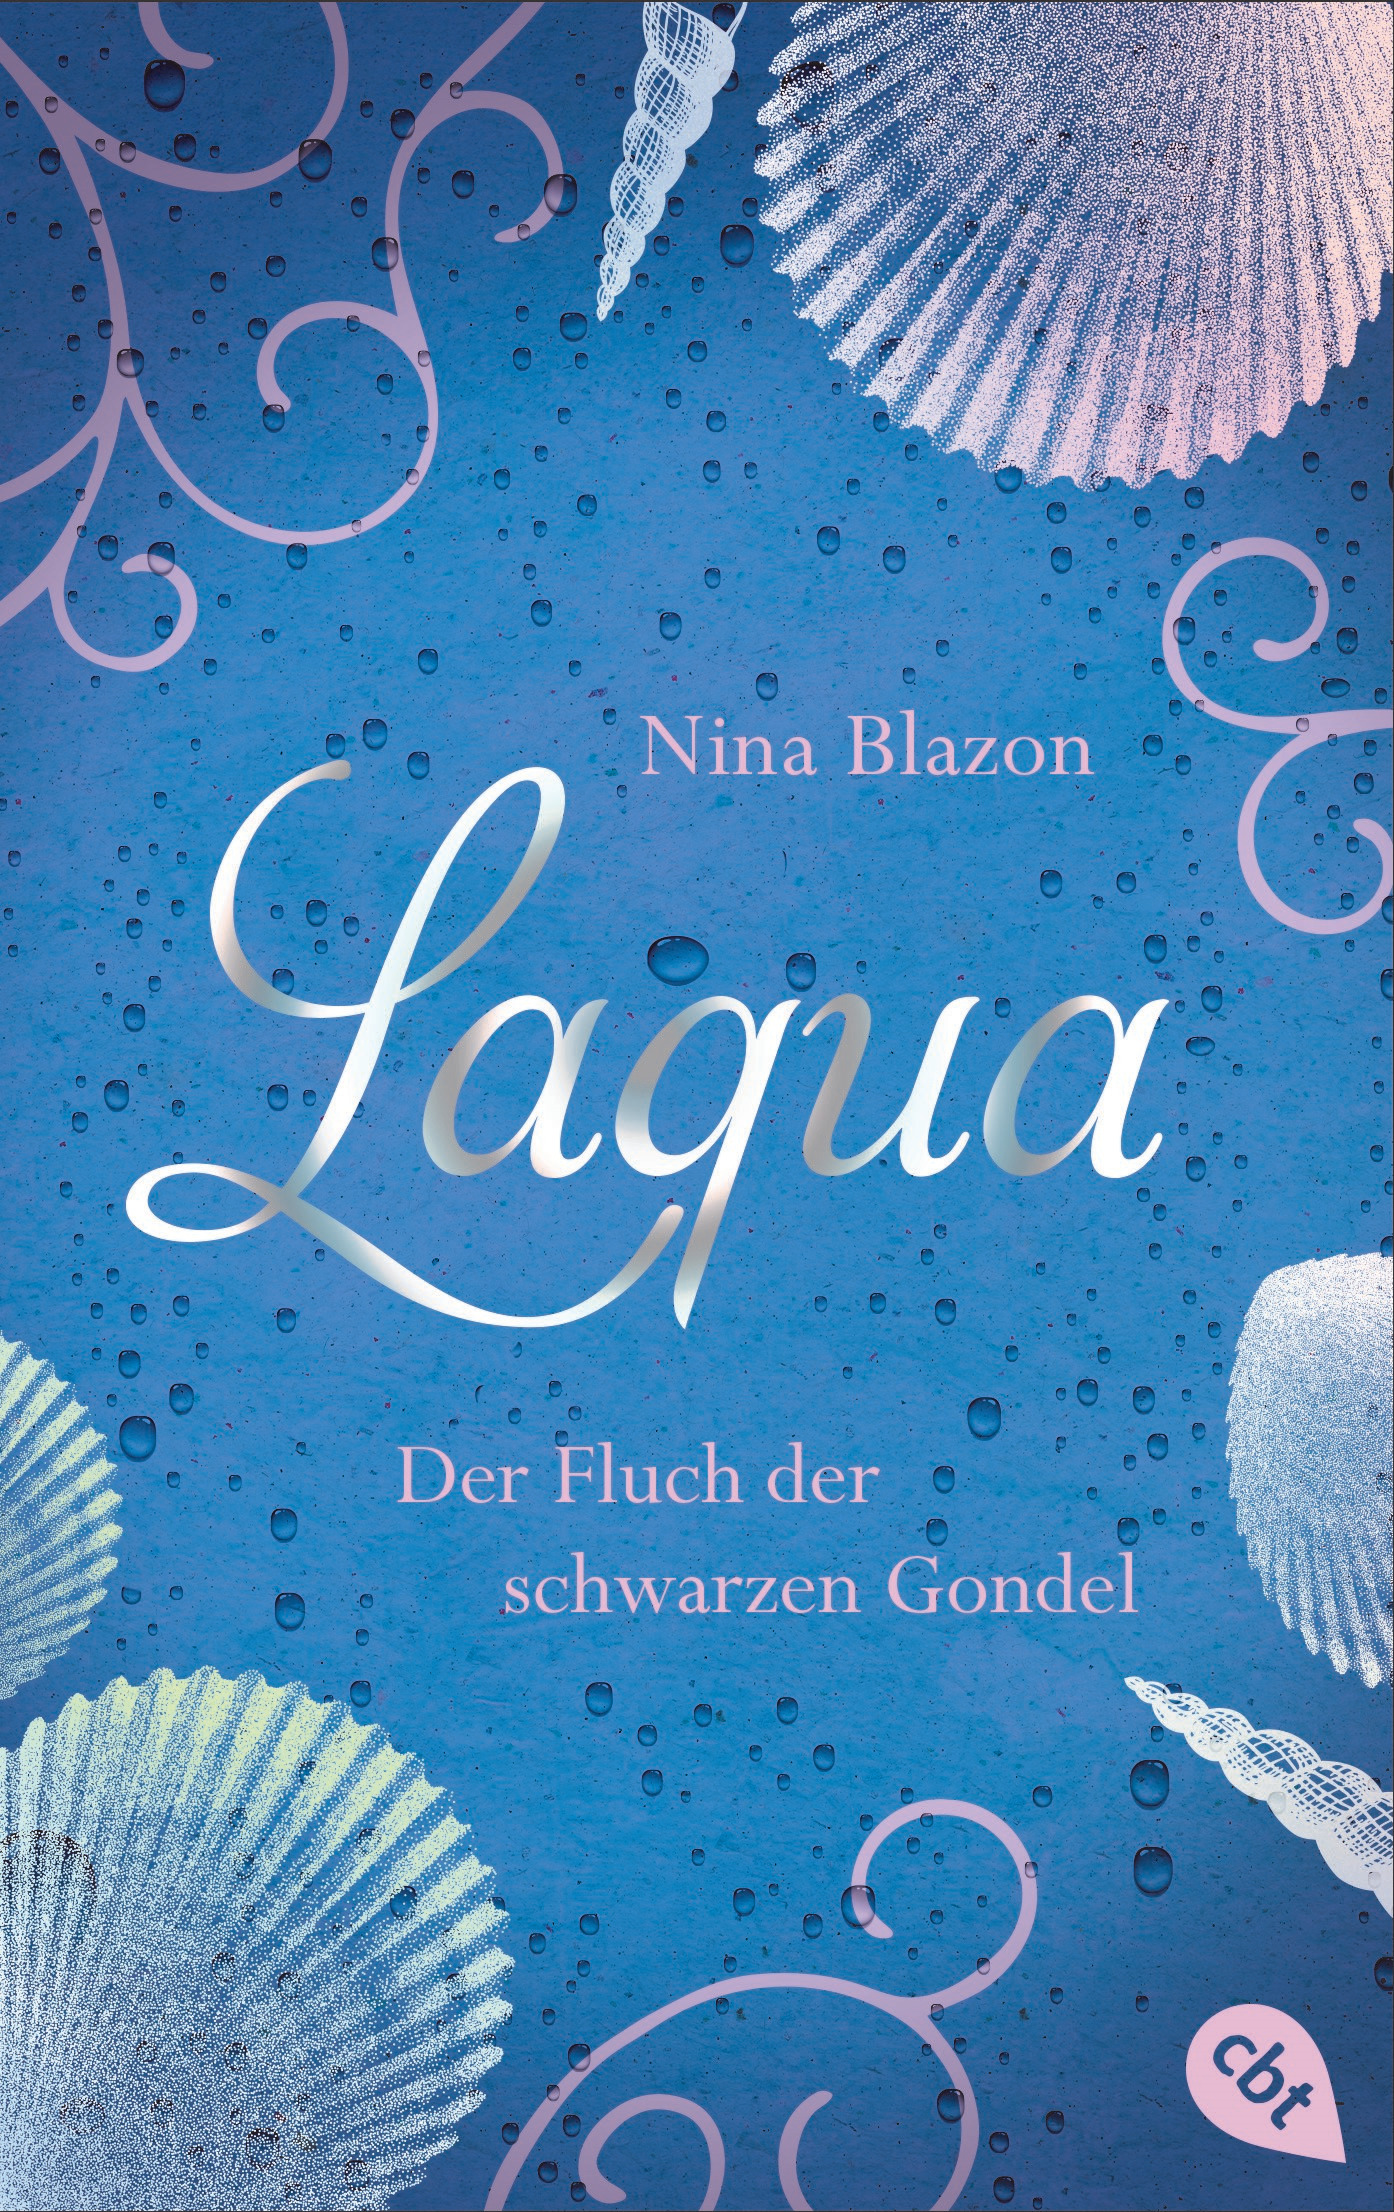 https://service.randomhouse.de/content/edition/covervoila_hires/Blazon_NLaqua_-_Gondel_NA_185645.jpg